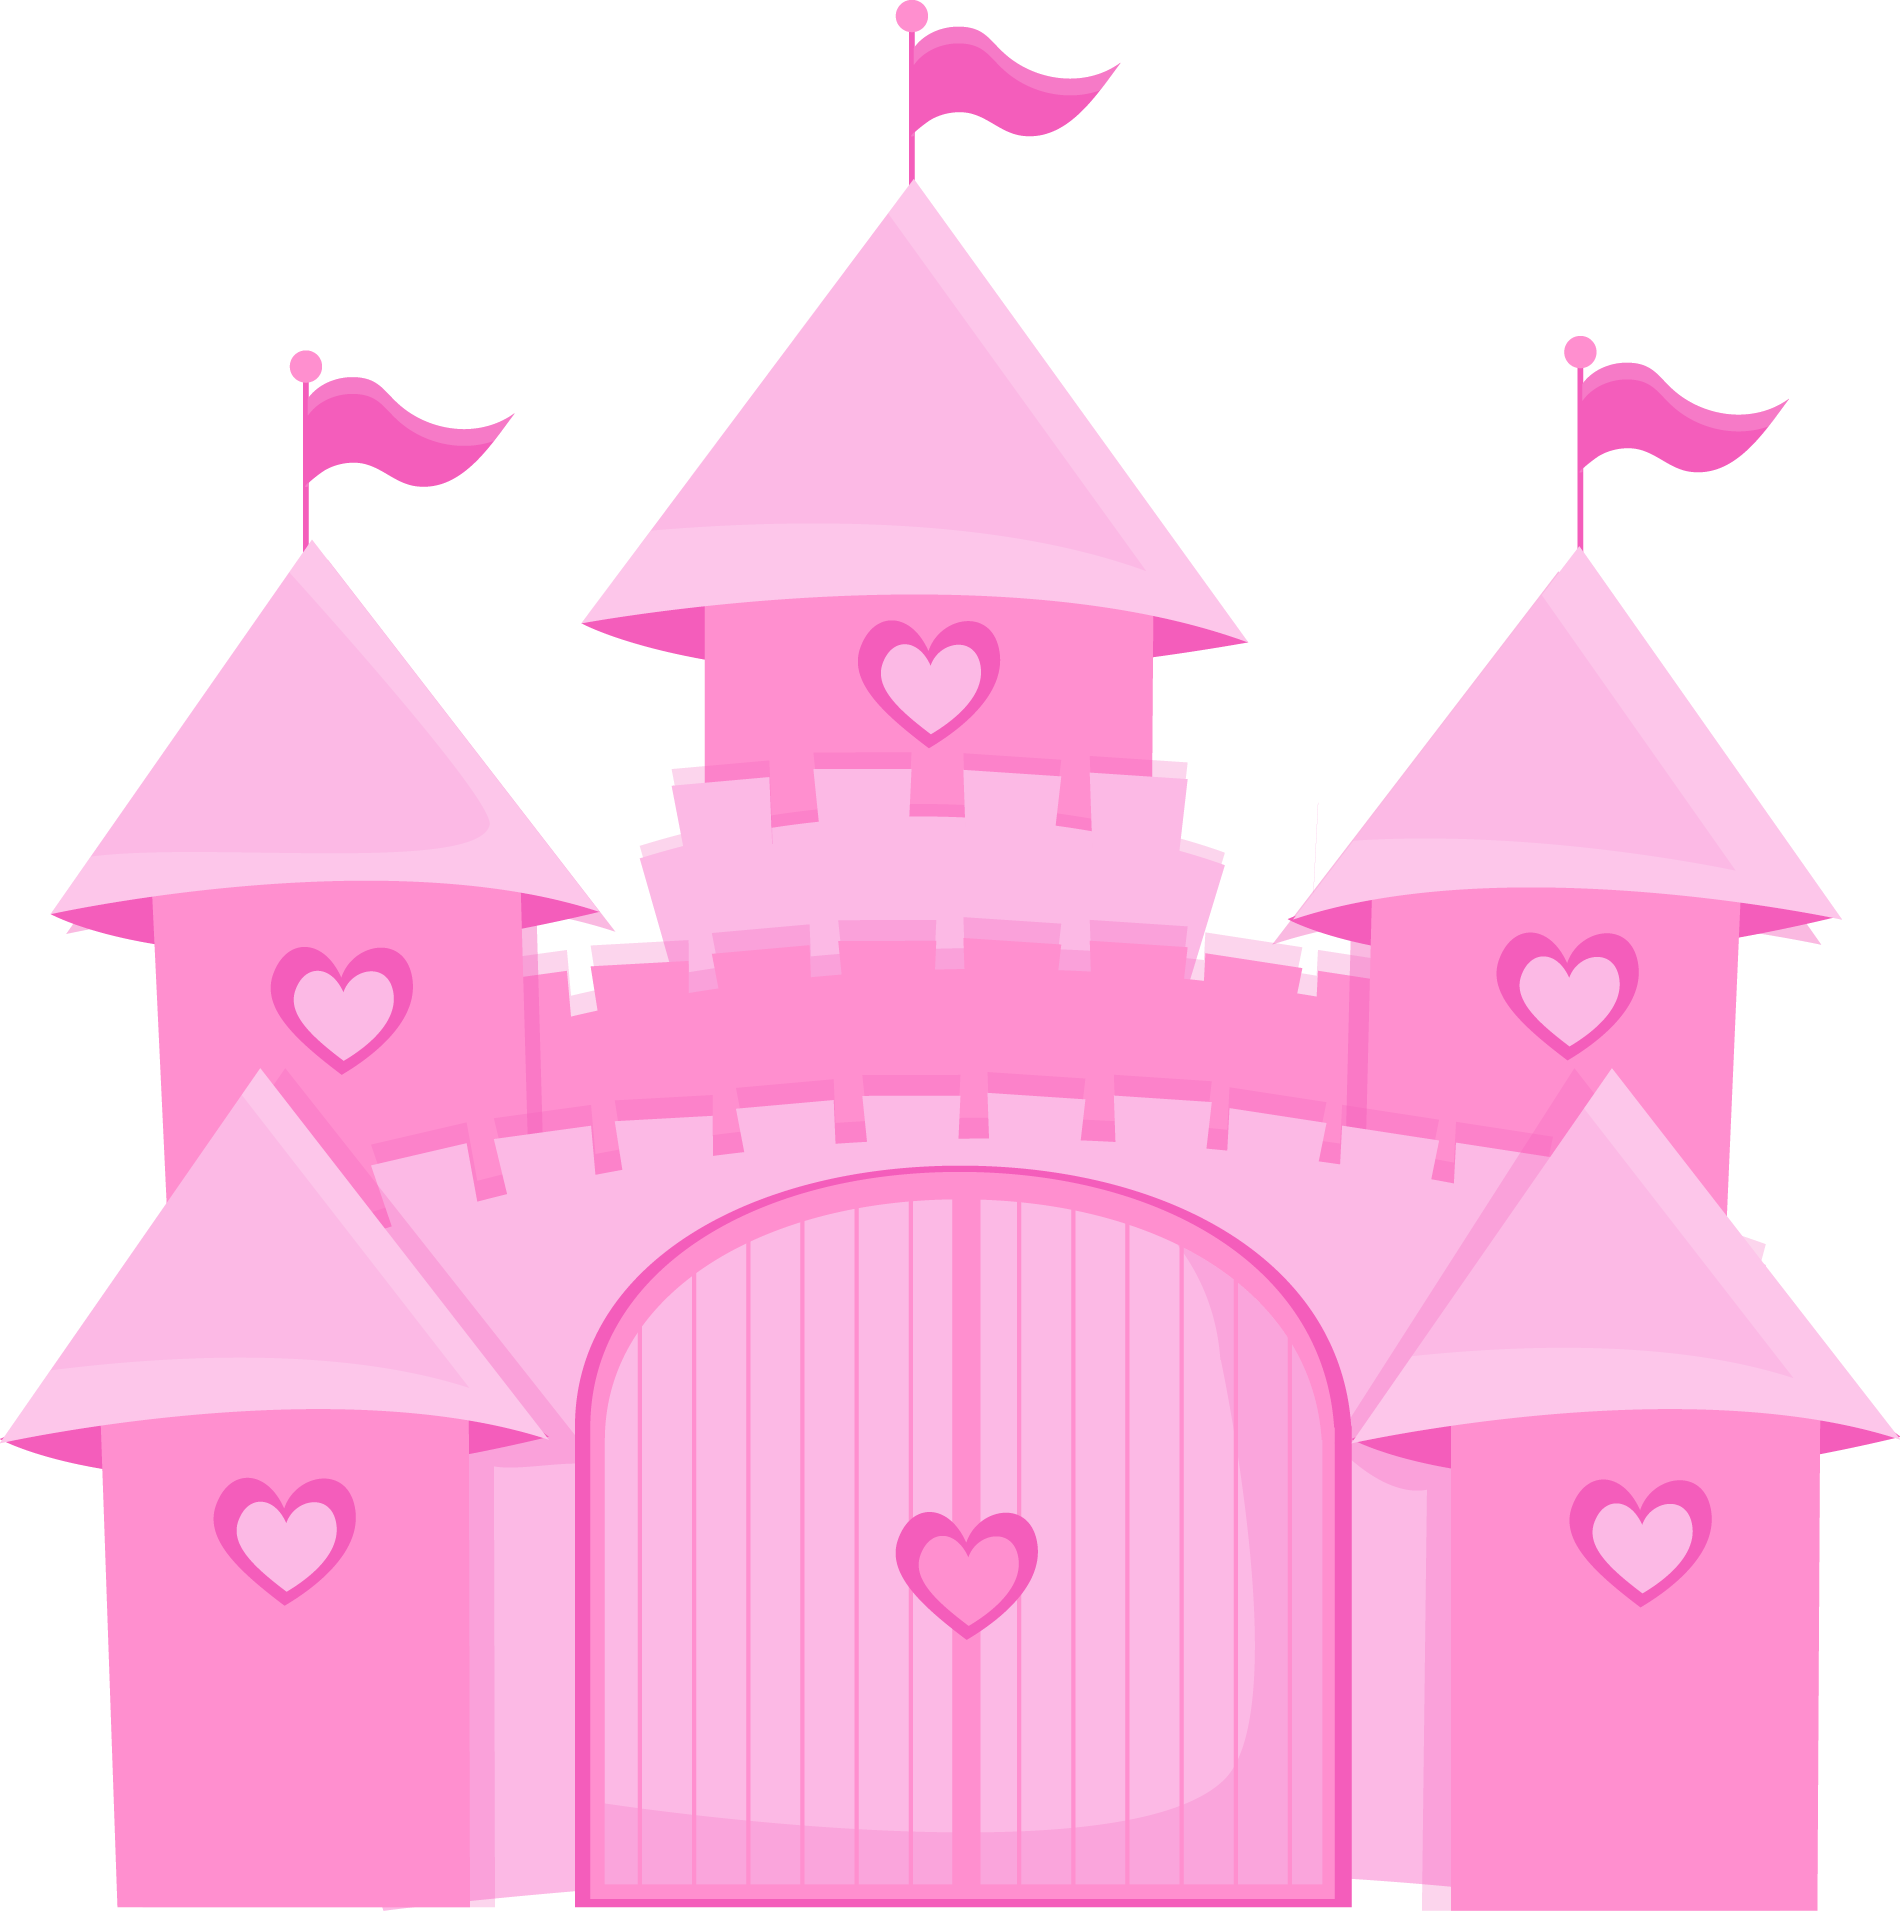 Ikvvsedqhybu png svgs pinterest. Clipart castle bedroom